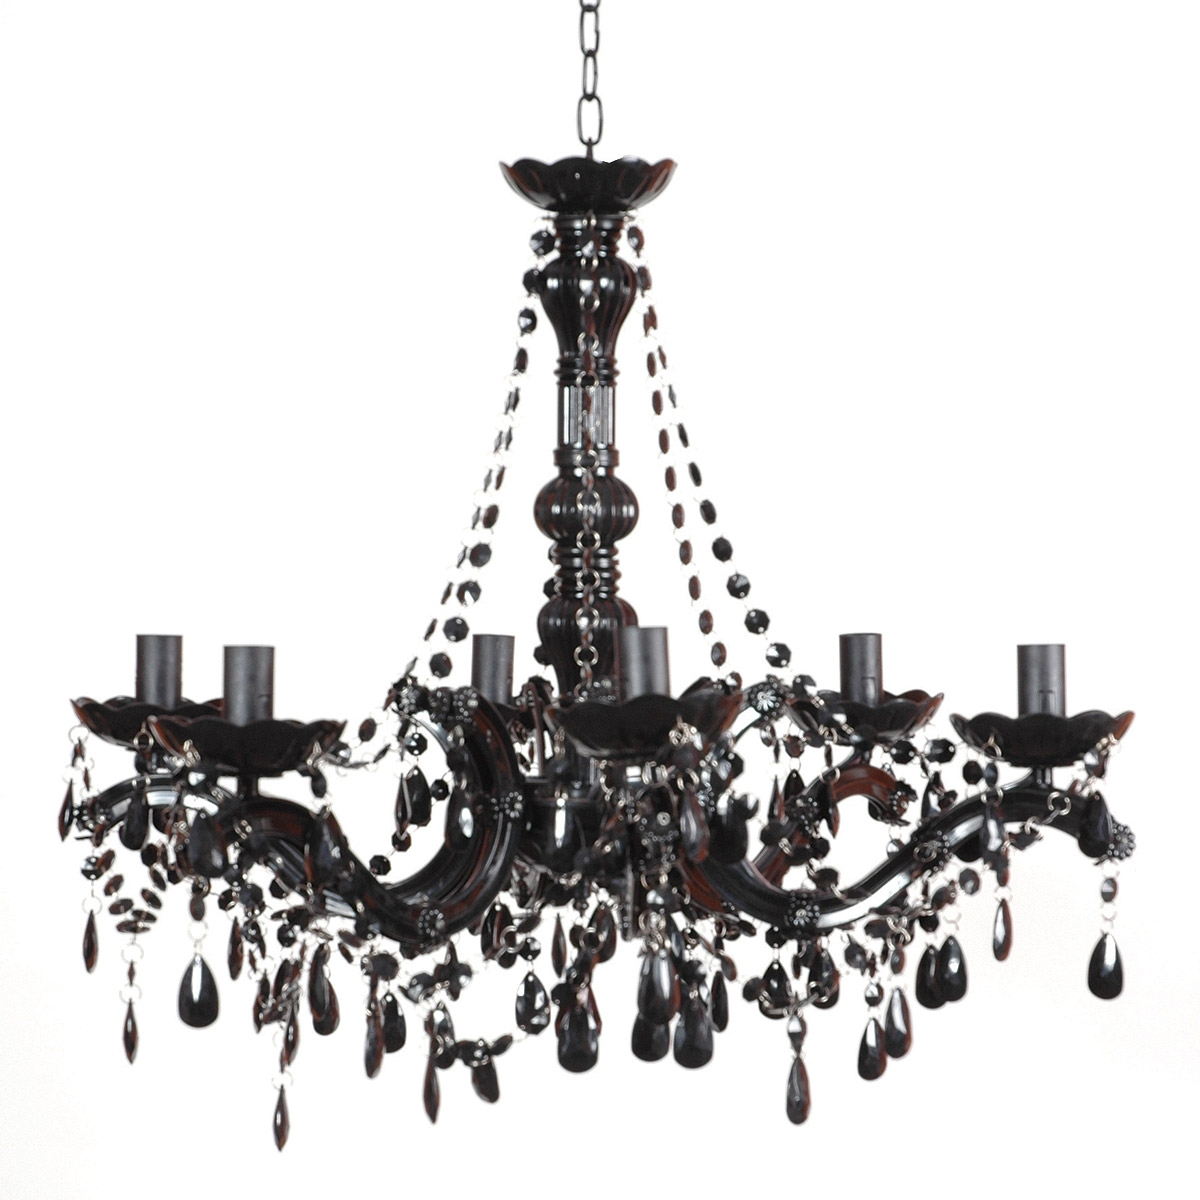 Black Chandeliers For And Chandelier Bedroom Modern Crystal Home Within Antique Black Chandelier (Image 6 of 15)